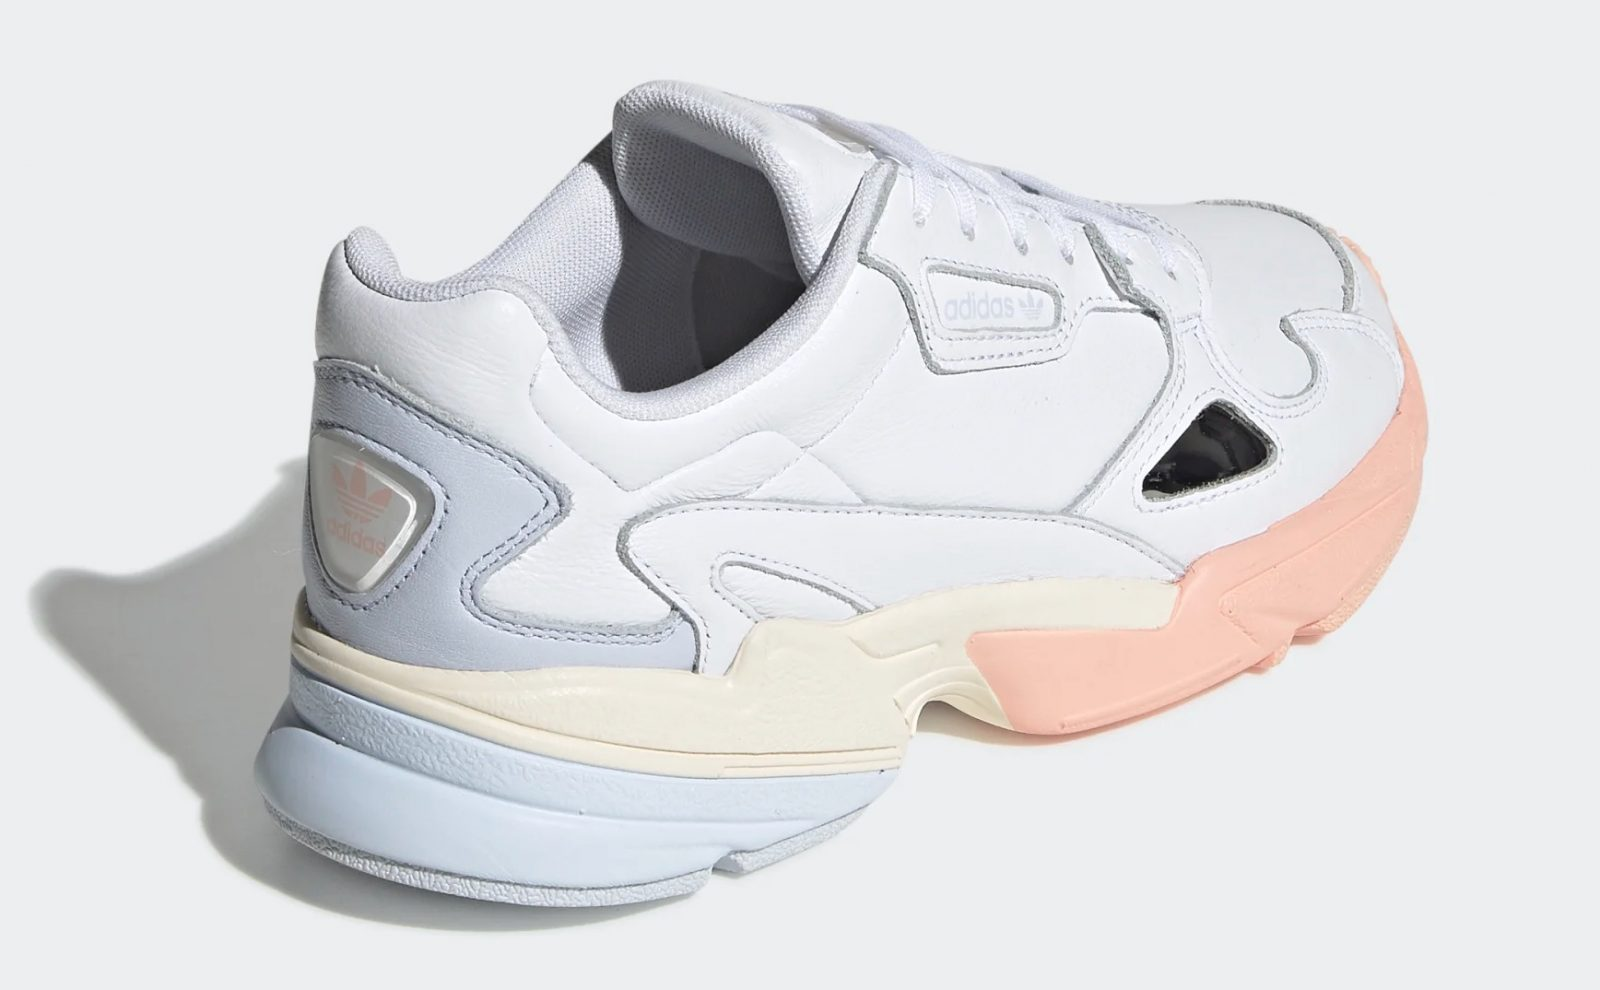 We Are Loving The Pastel Hues On This New adidas Falcon heel